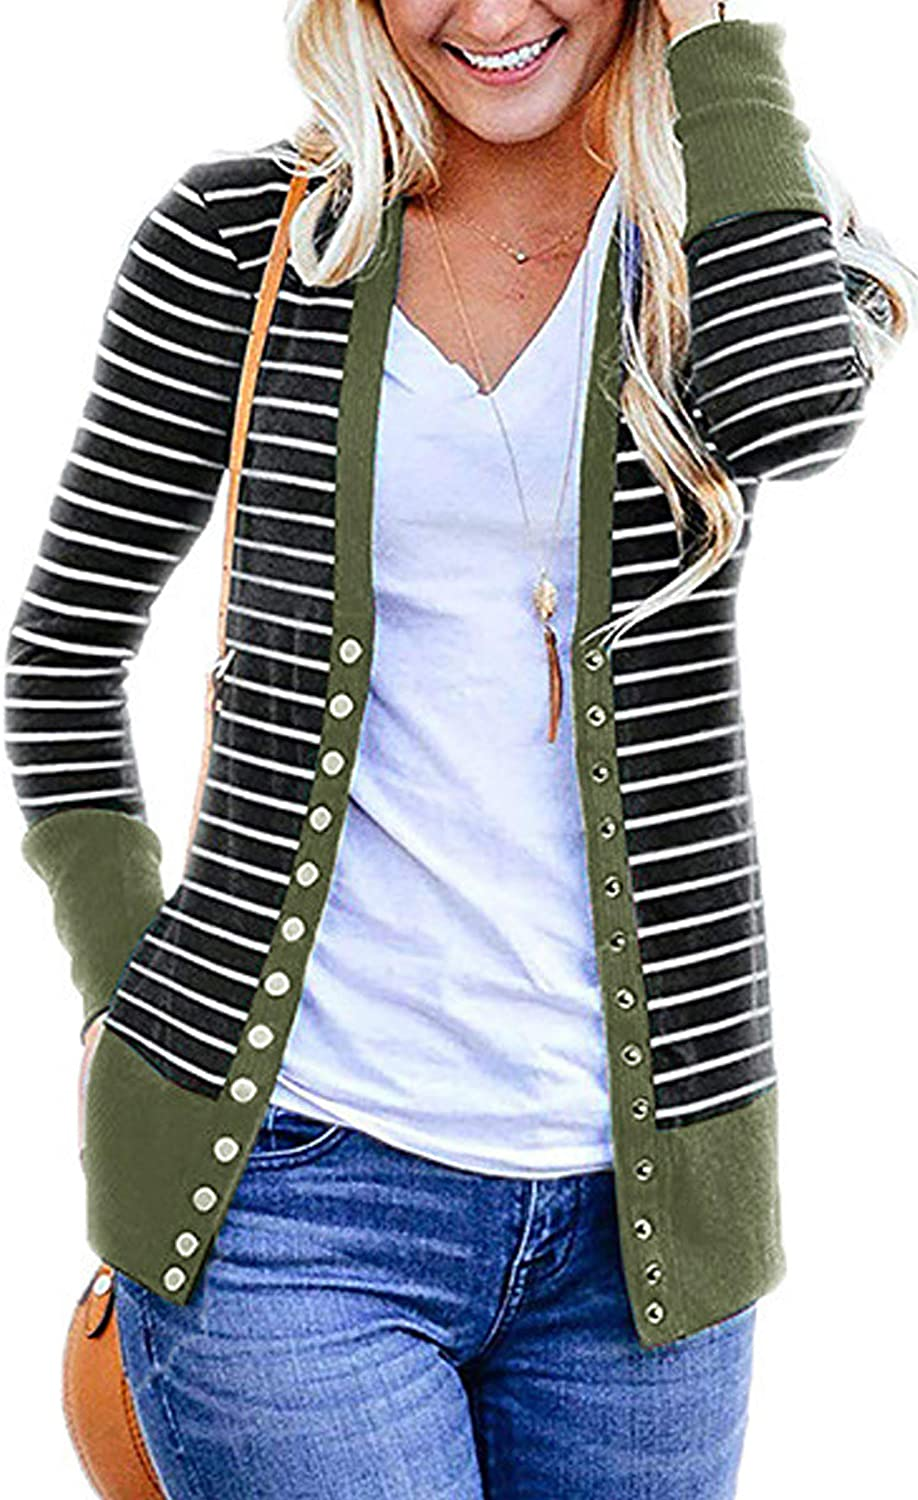 CinShein Women's Striped Cardigan Button Down Knitwear Striped Long Sleeve Knit Ribbed Neckline Sweater Coat